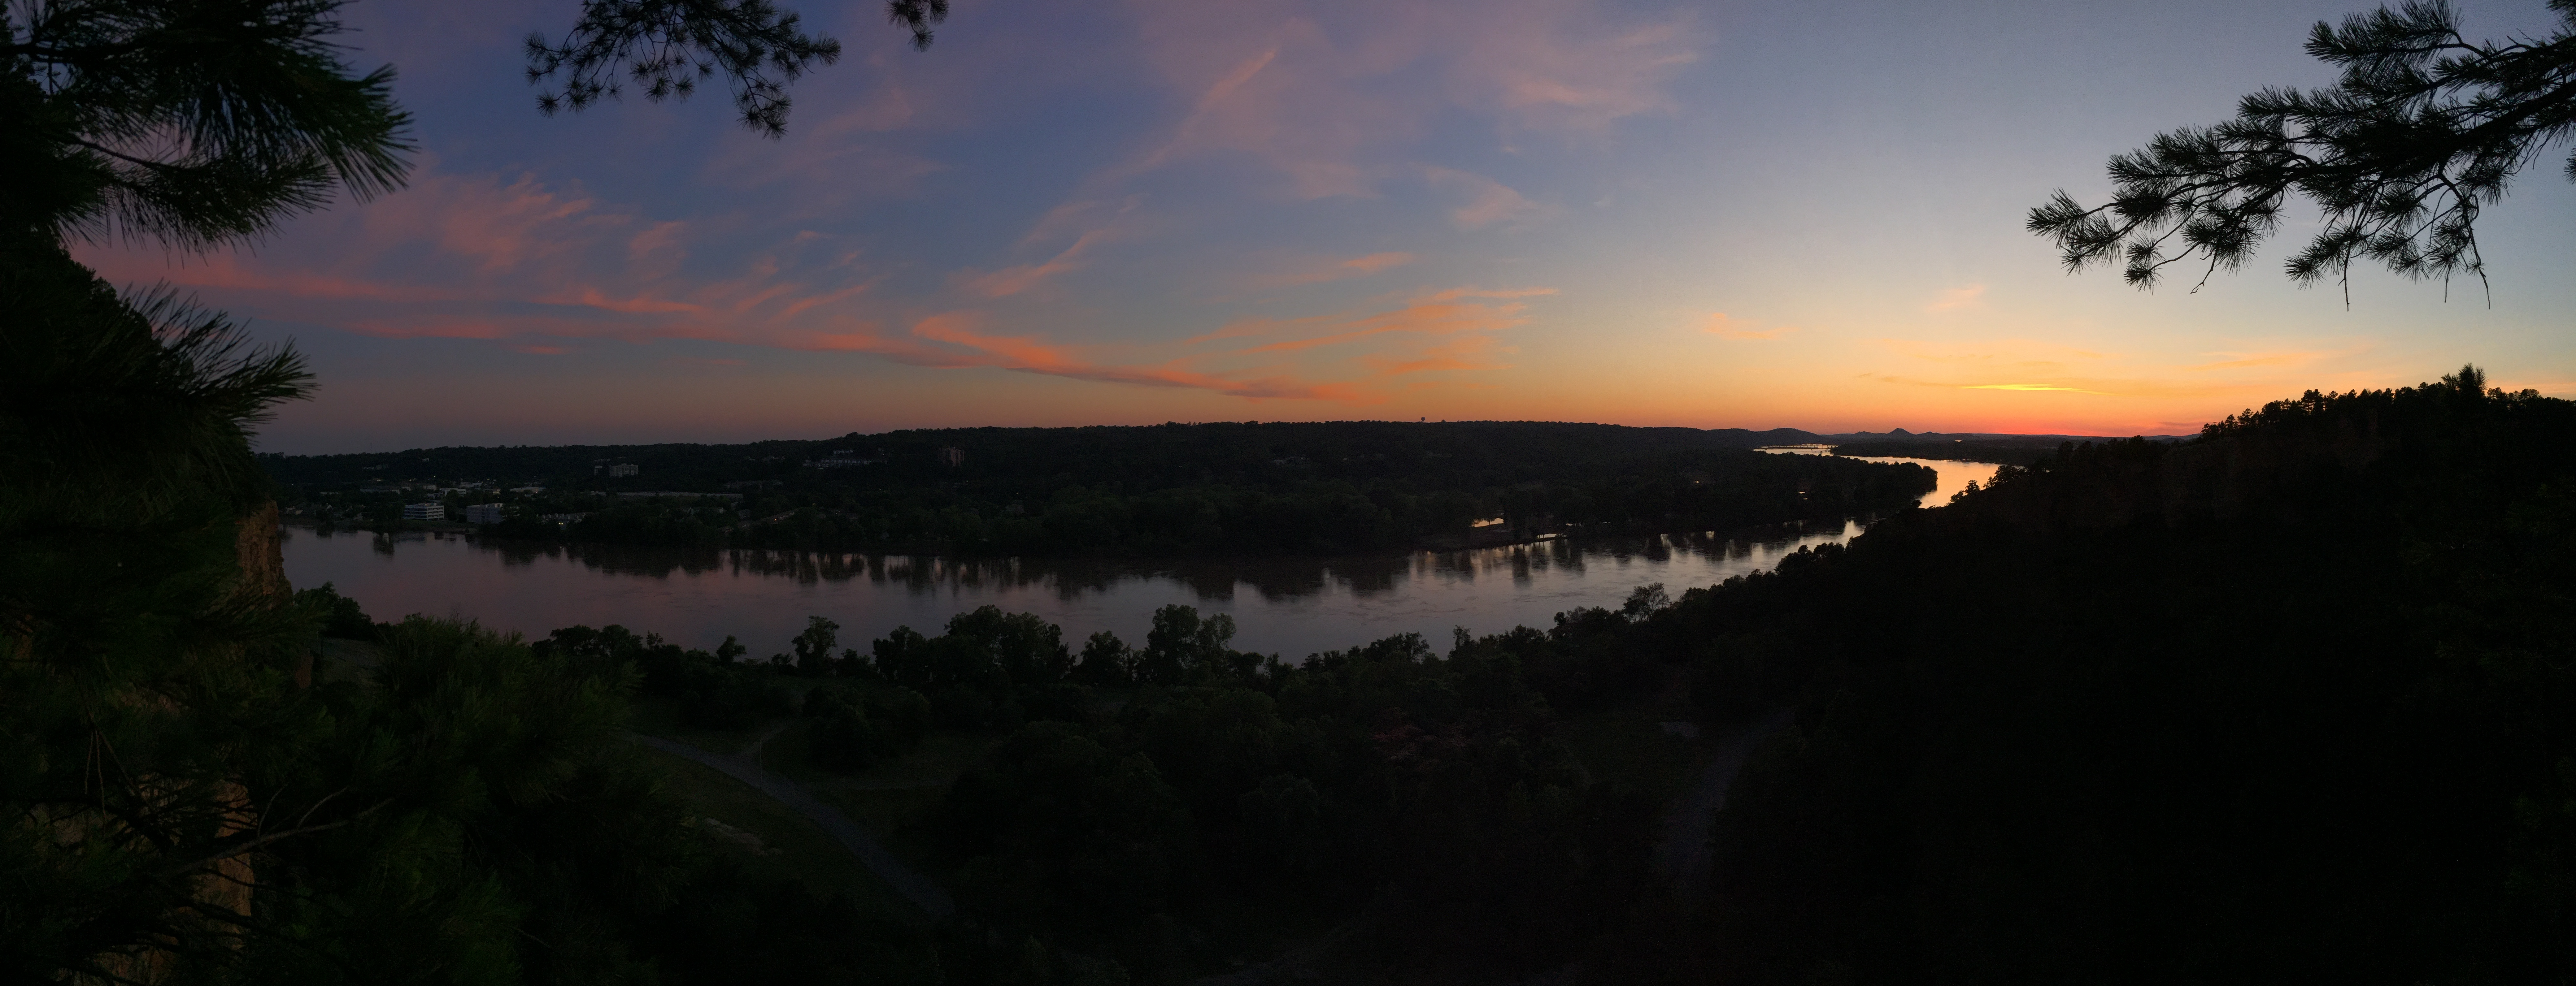 Panorama sunset at Emerald Park in North Little Rock Arkansas